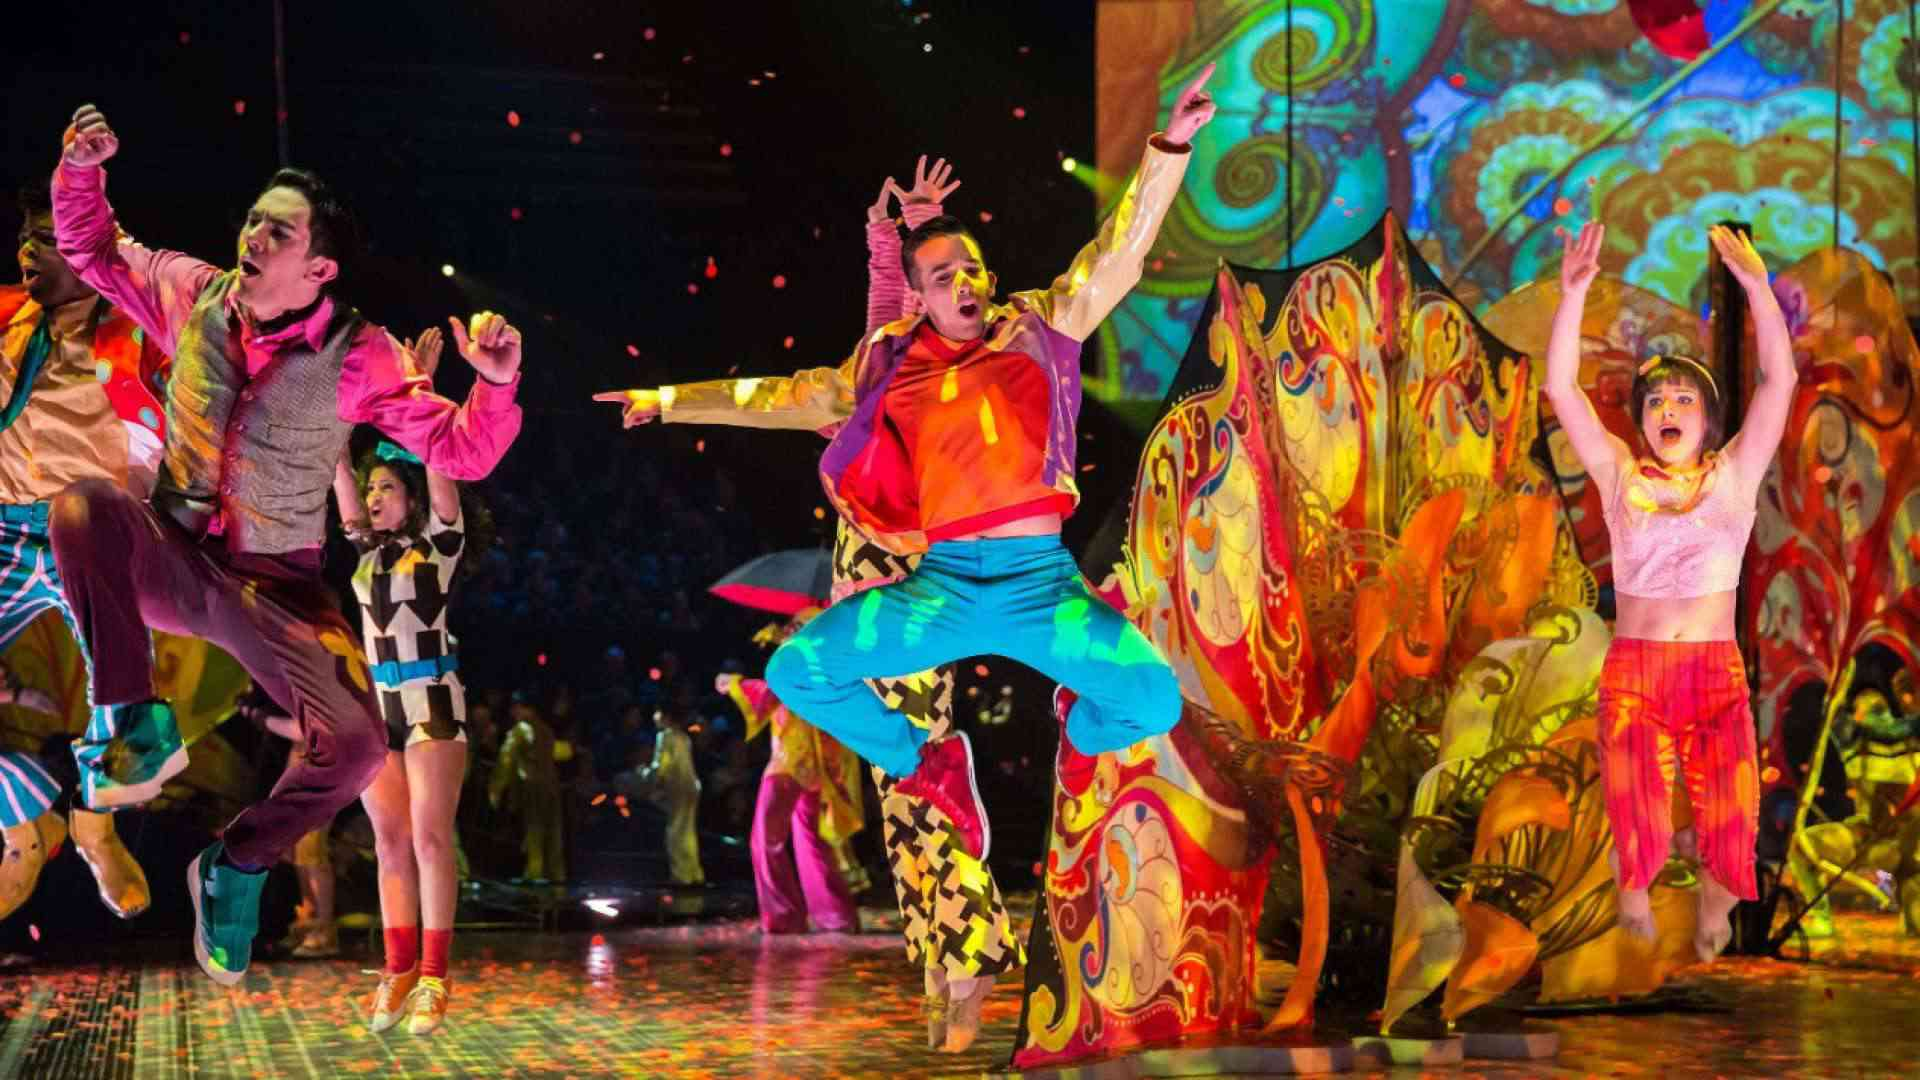 Dancers jump in the air on a colorful background